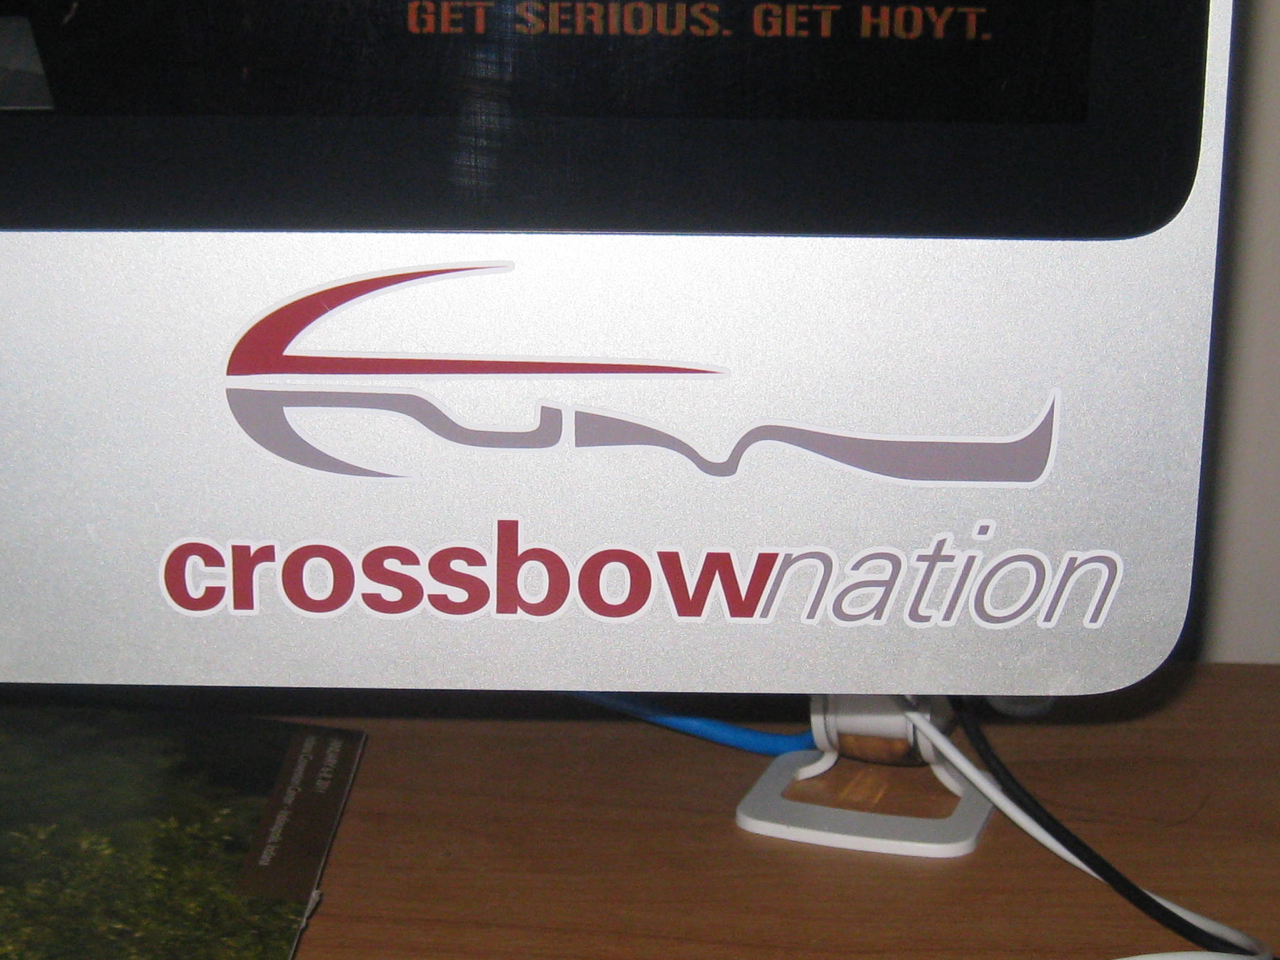 crossbow-nation-decal